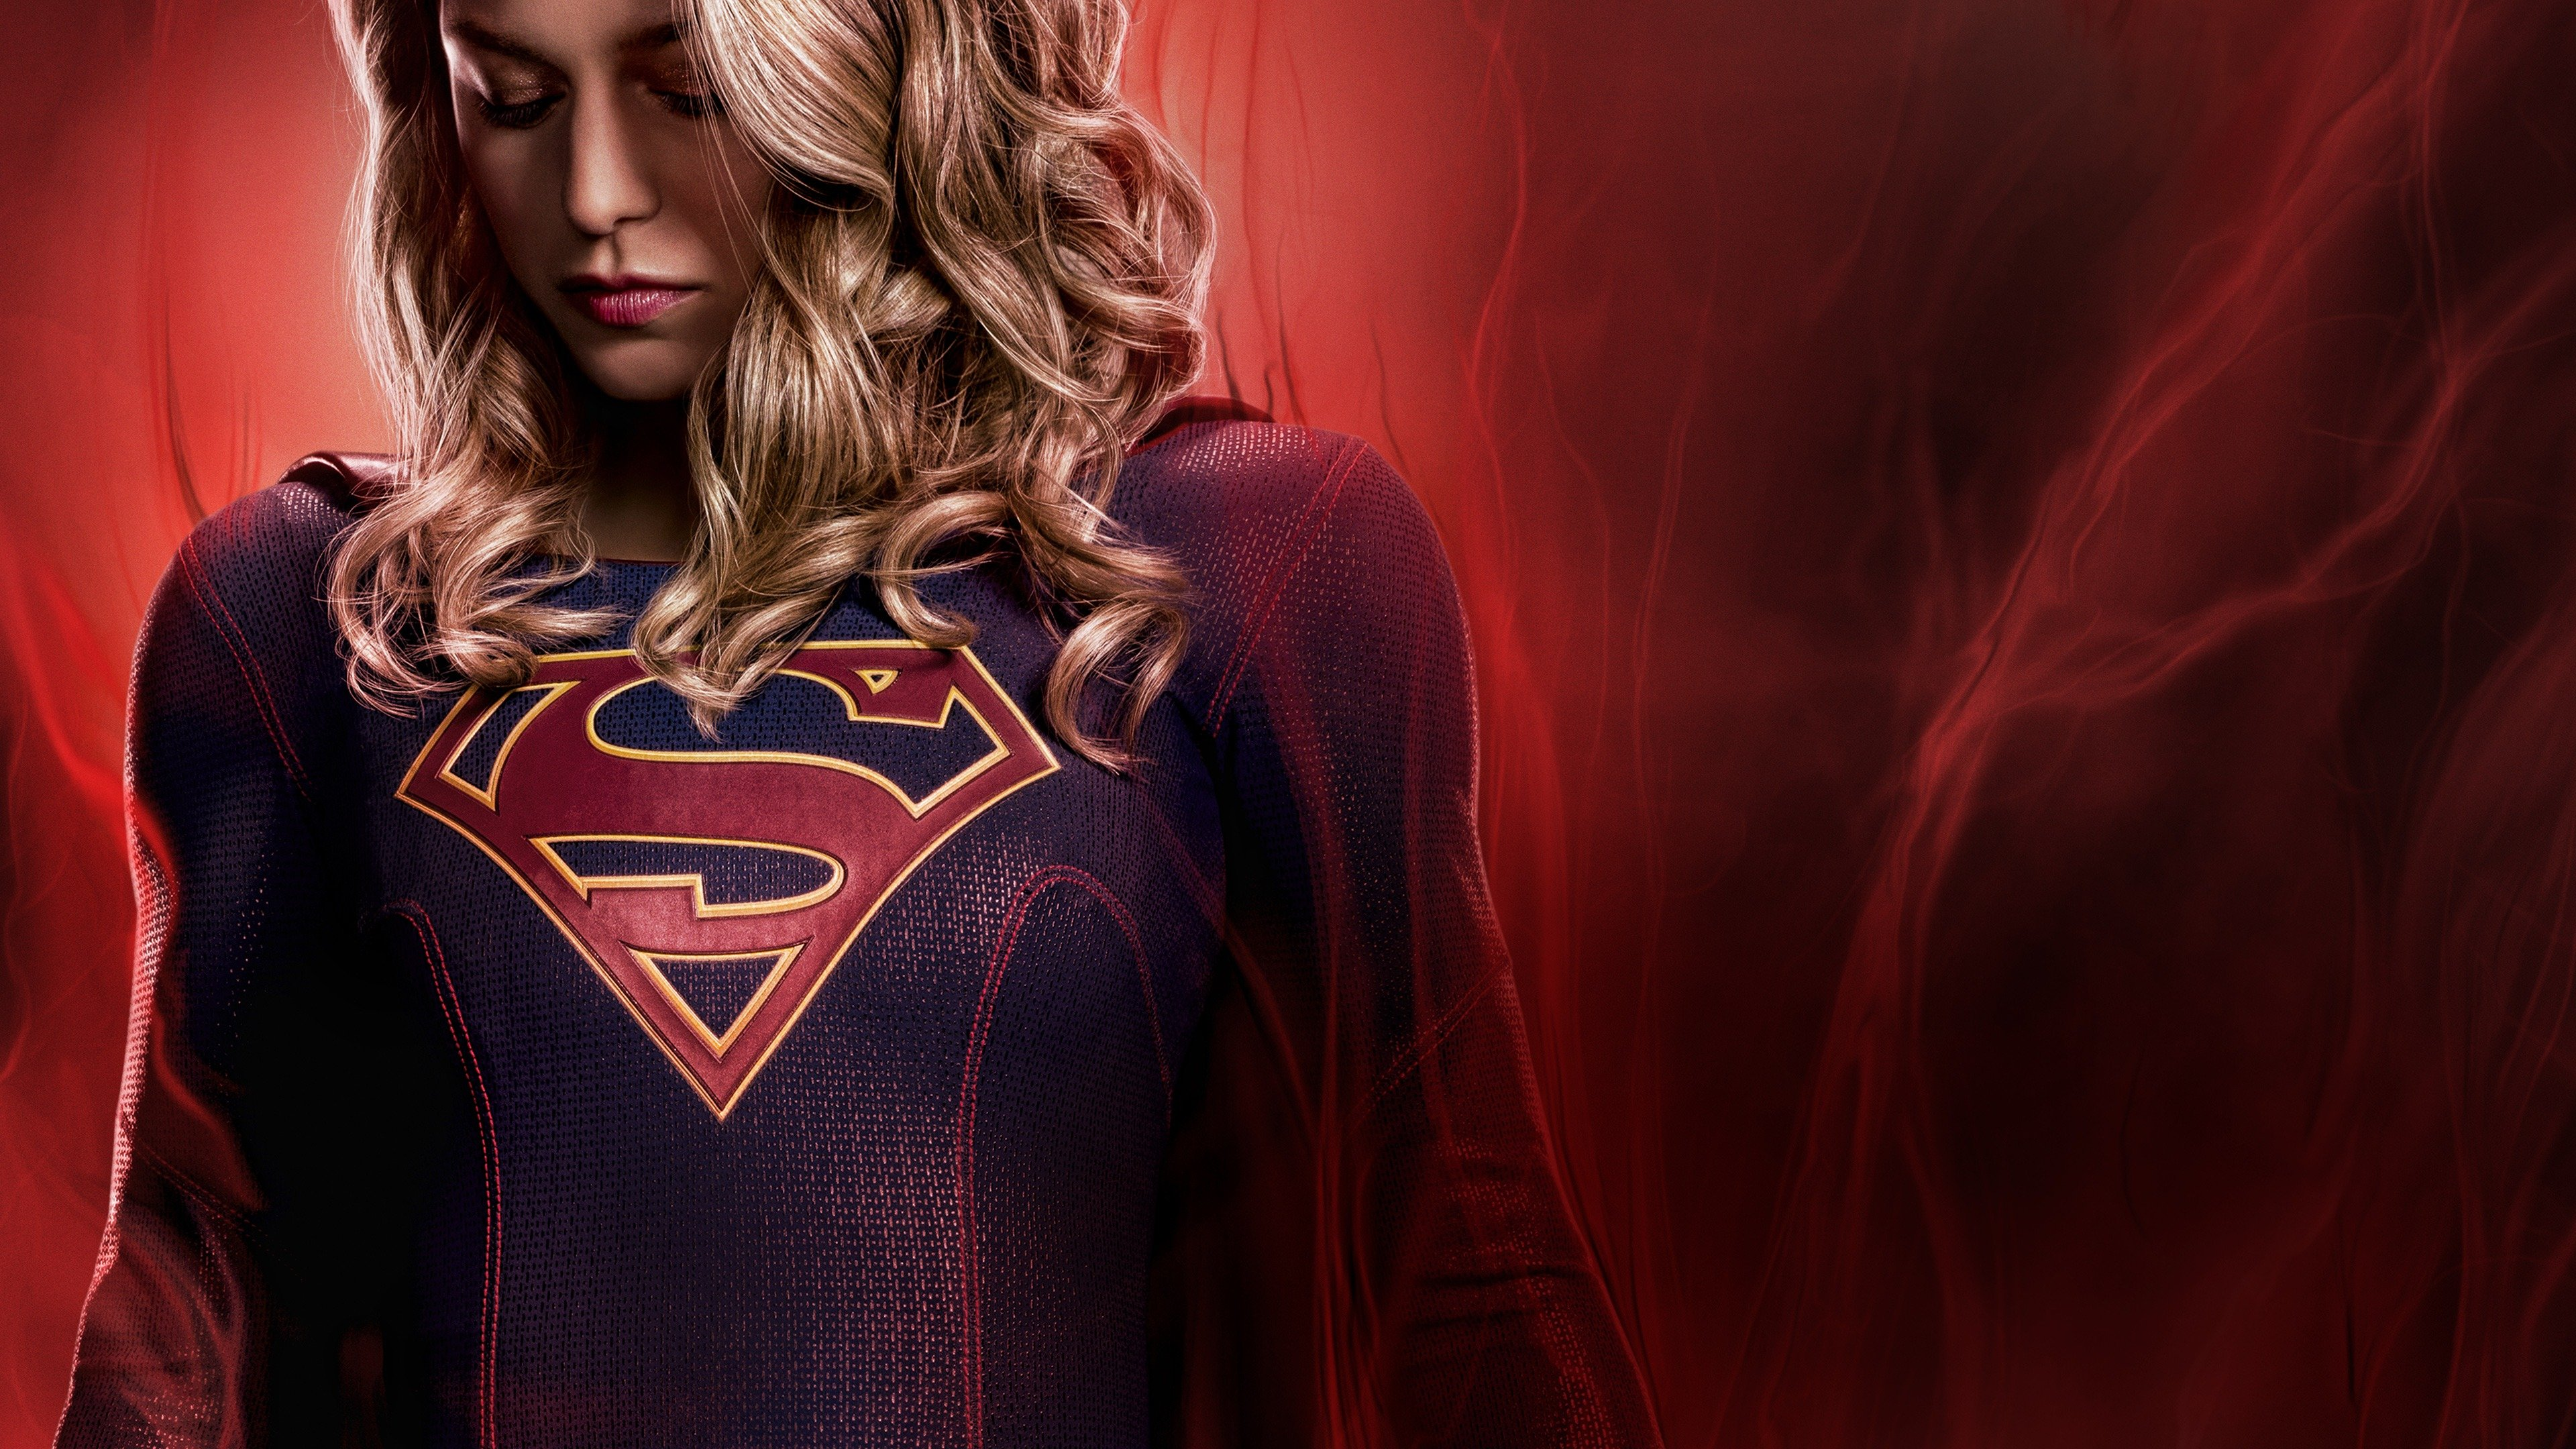 Supergirl Season 5 Wallpapers Wallpaper Cave